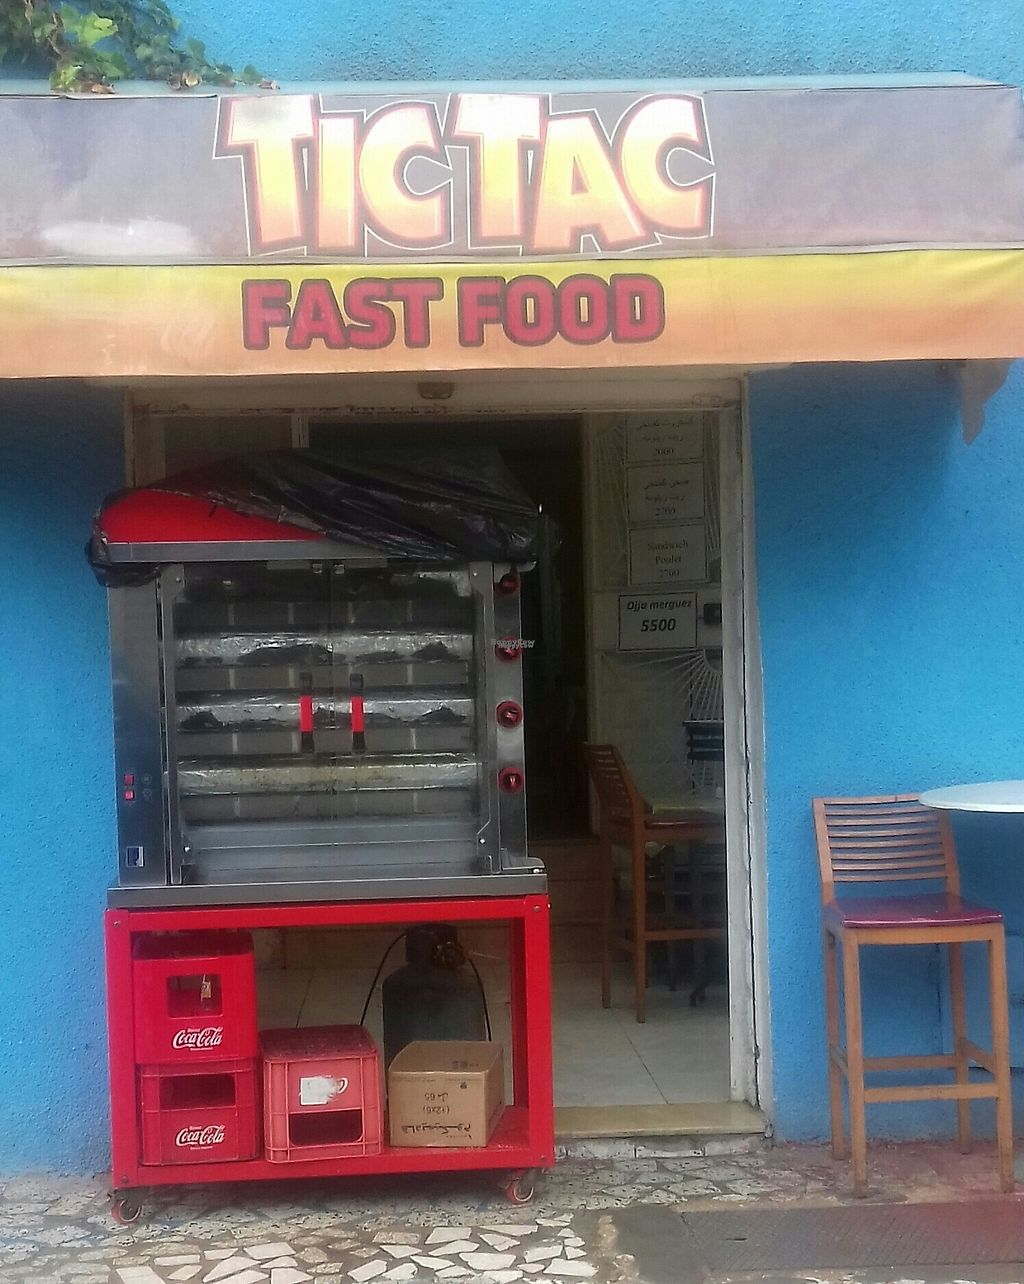 """Photo of Tic-Tac  by <a href=""""/members/profile/Essia"""">Essia</a> <br/>Front of the shop  <br/> November 11, 2016  - <a href='/contact/abuse/image/82423/188635'>Report</a>"""